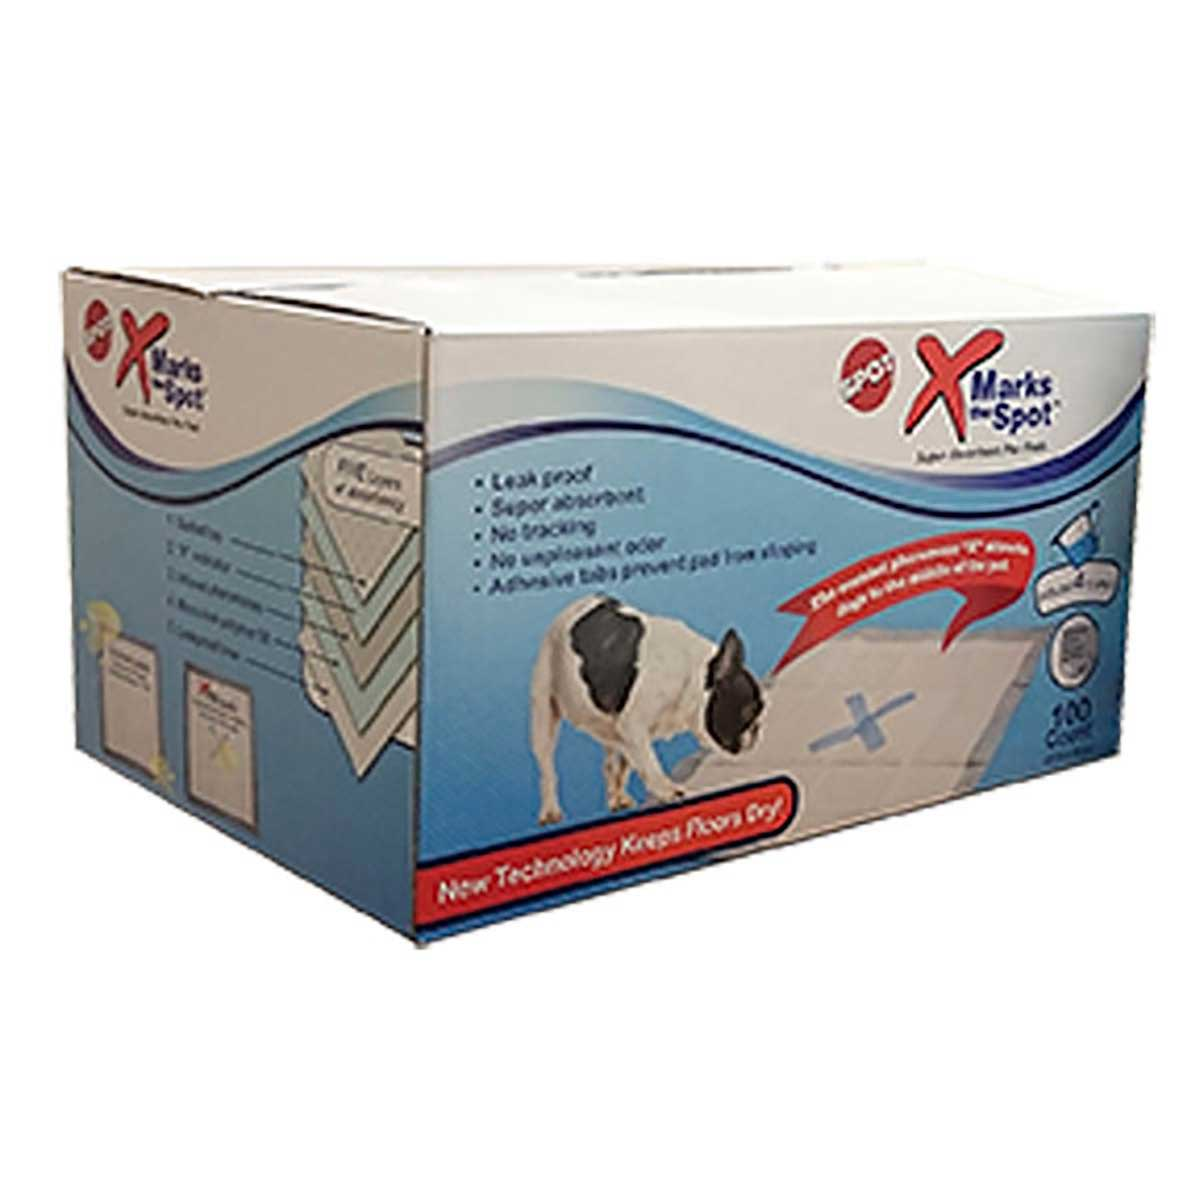 100 Count Box of X Marks The Spot Super Absorbent Pee Pads